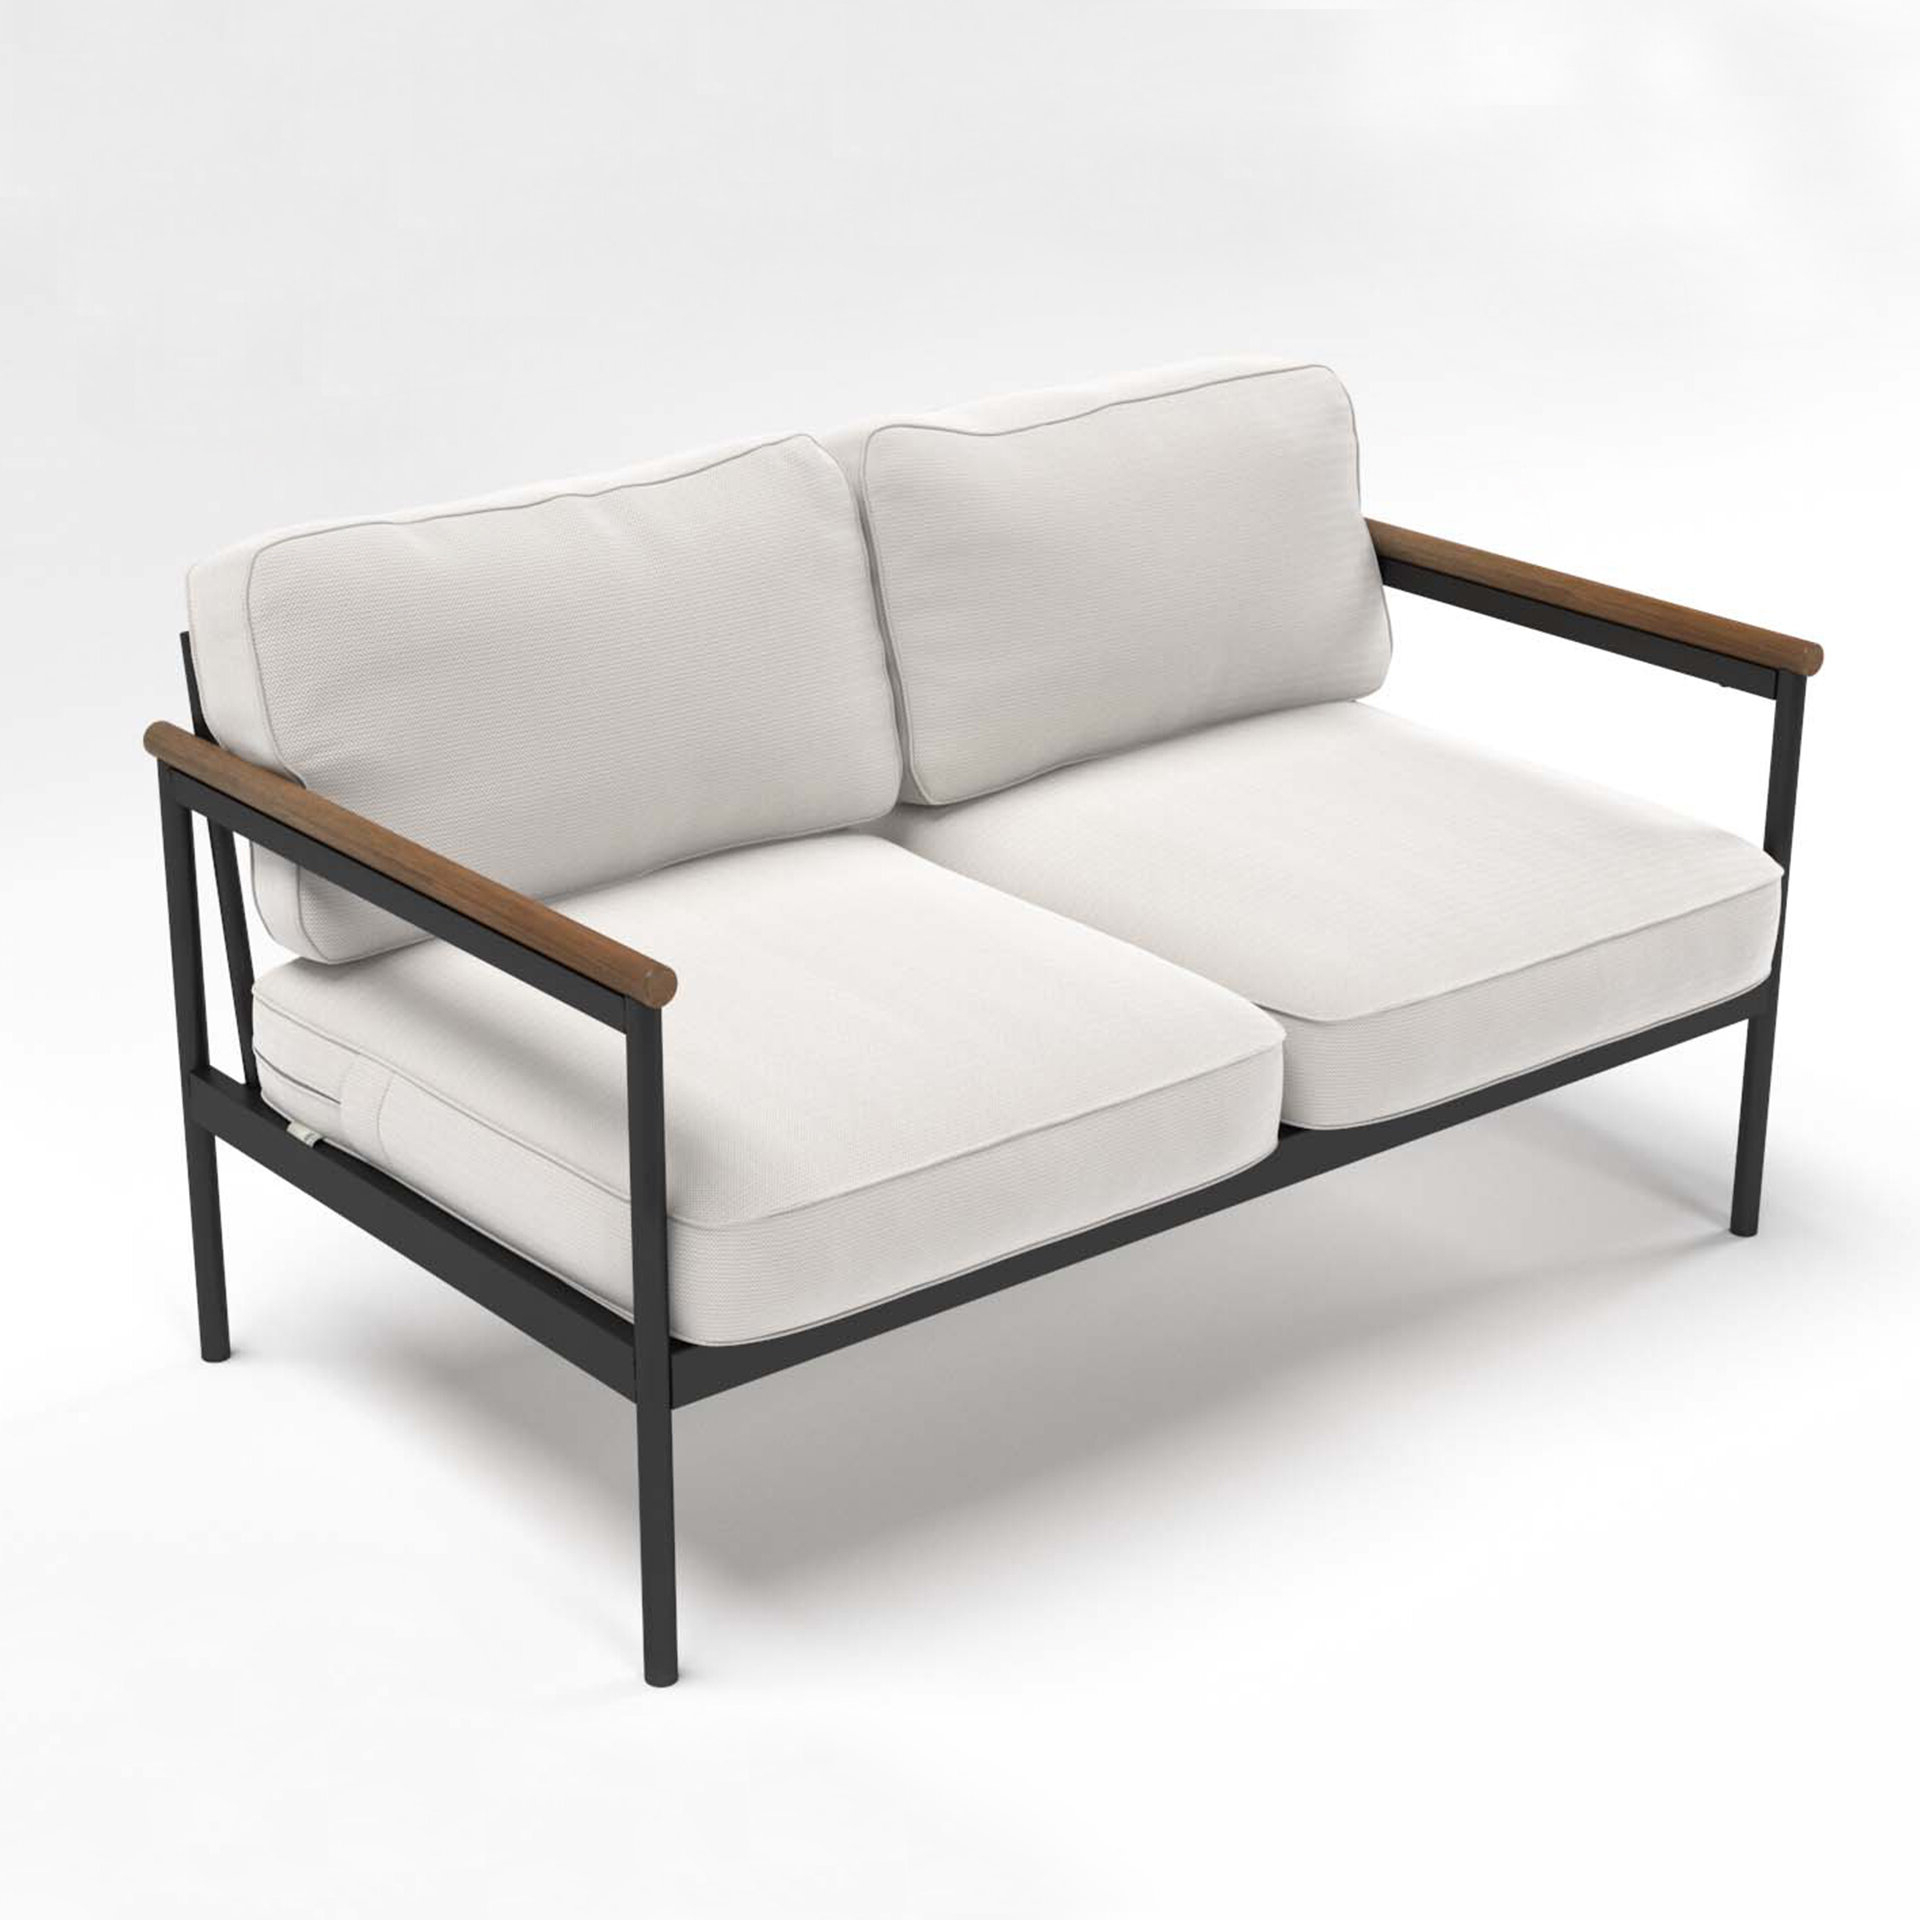 Freitag Loveseats With Cushions Inside 2020 Outdoor Loveseat With Cushions (View 11 of 20)